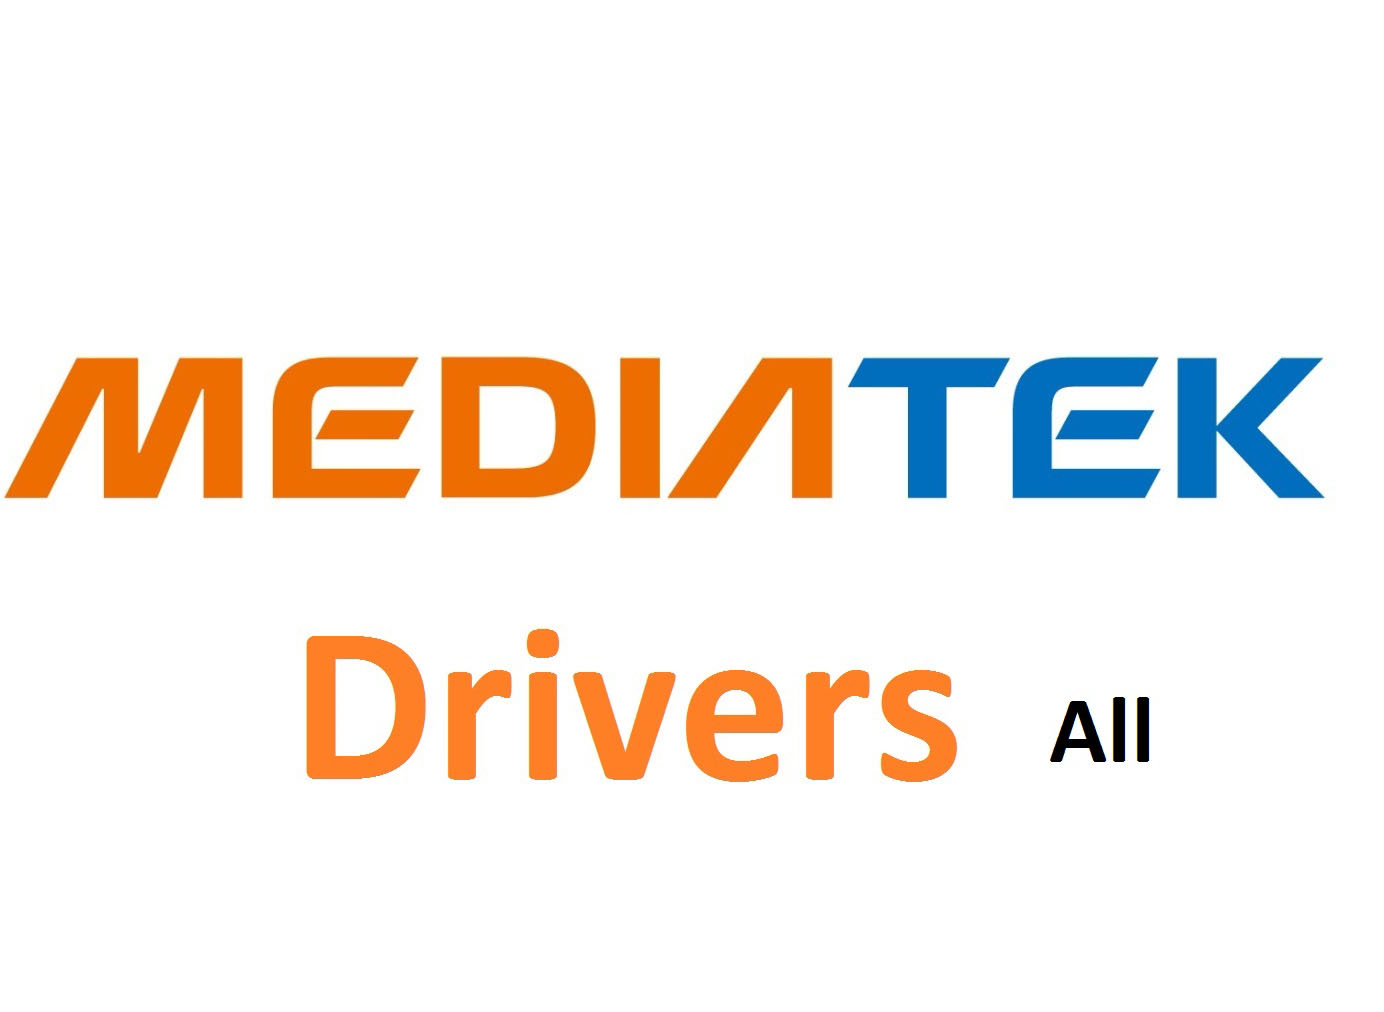 download mtk driver for windows 8